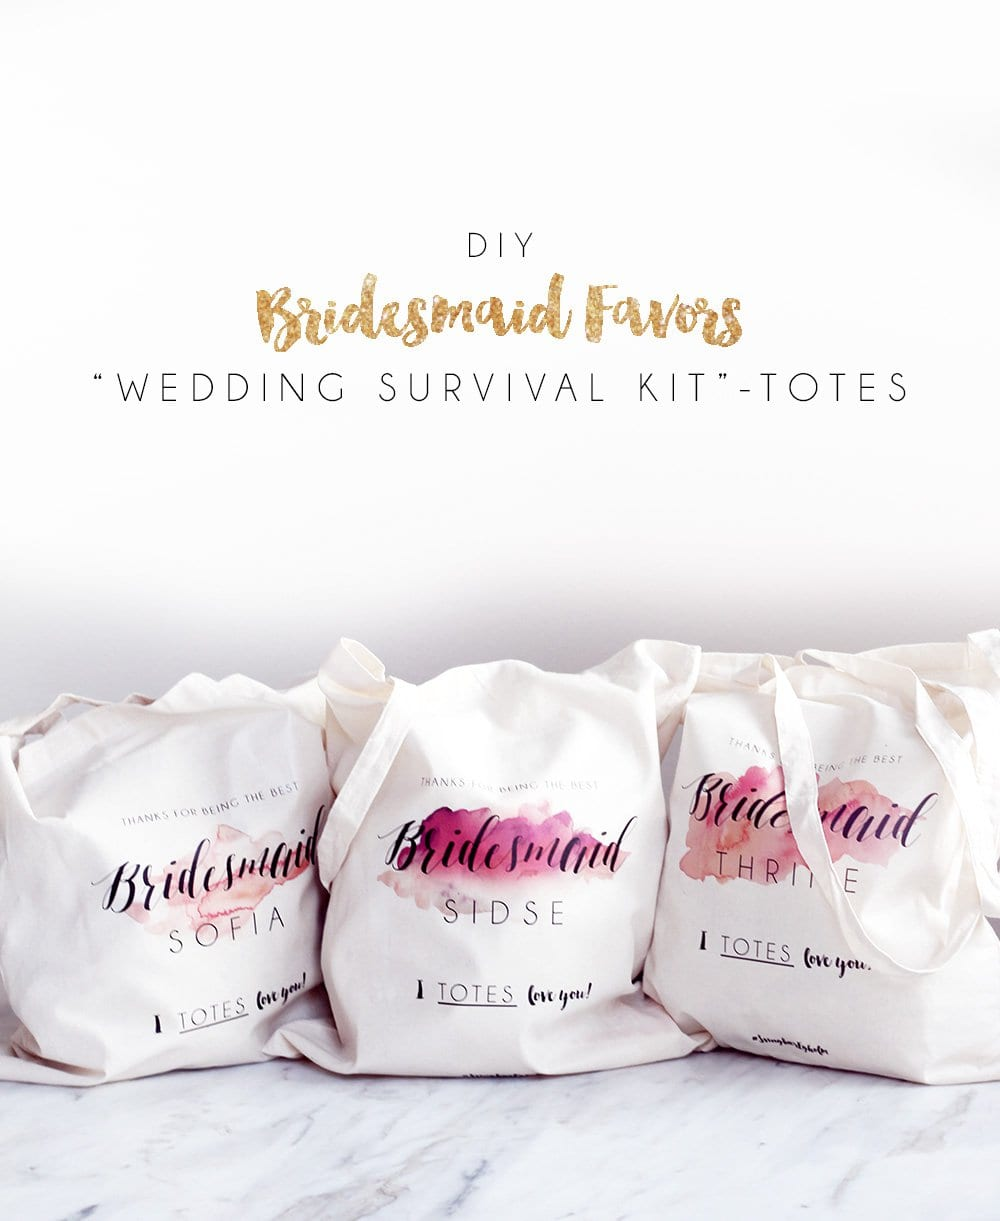 diy-bridesmaid-favors-1